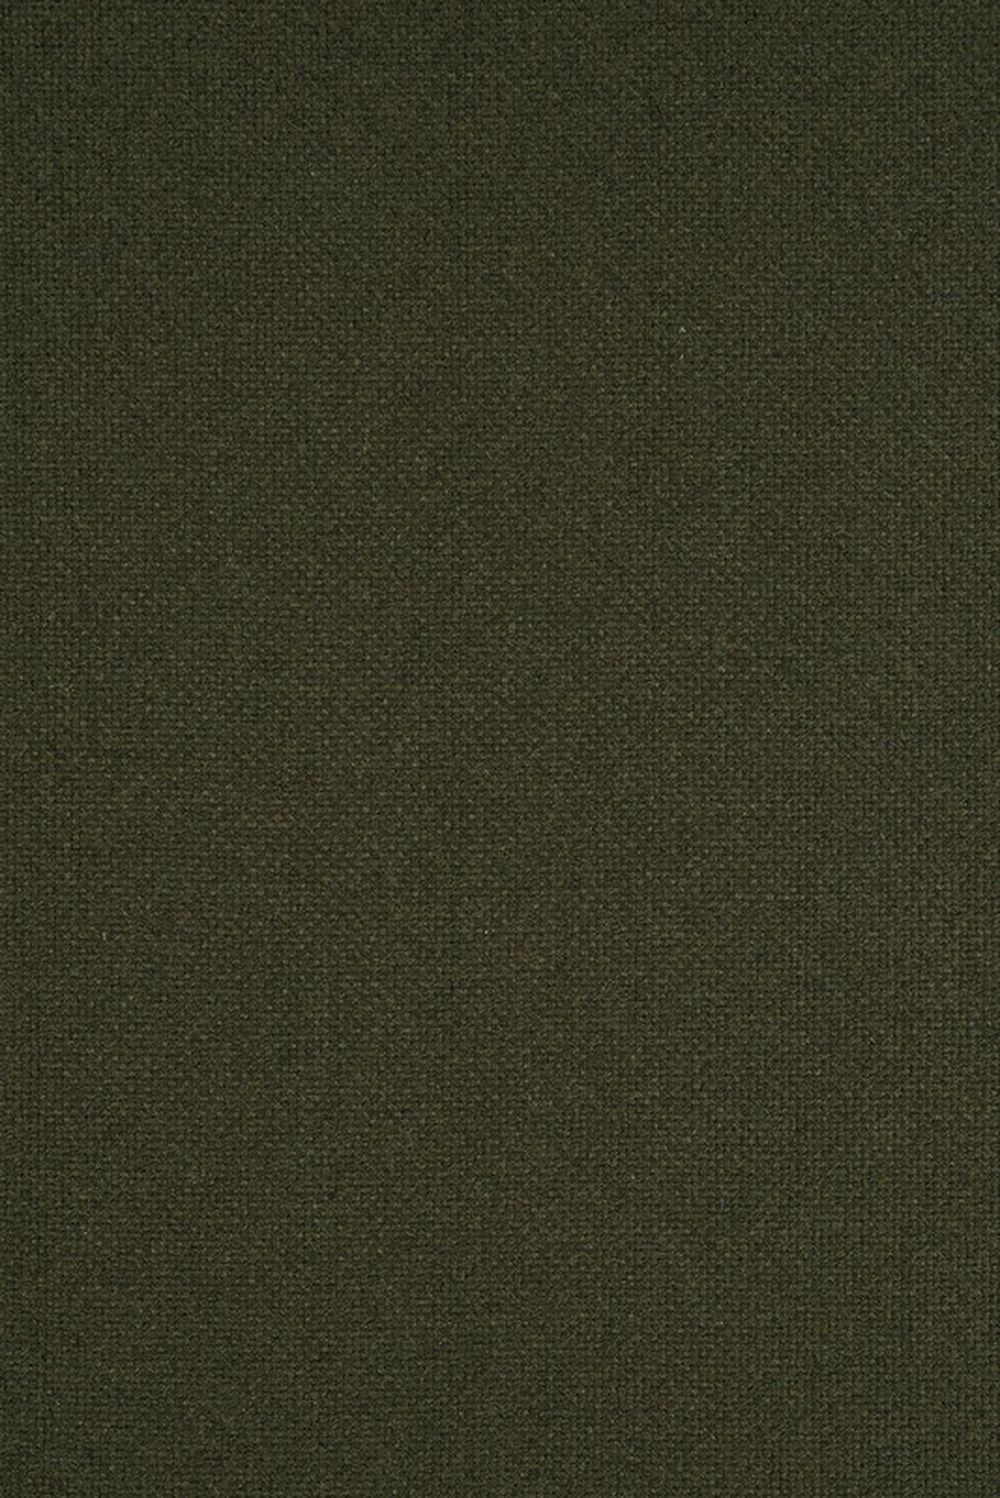 Photo of the fabric Como Olive swatch by Mokum. Use for Upholstery Heavy Duty, Accessory. Style of Plain, Texture